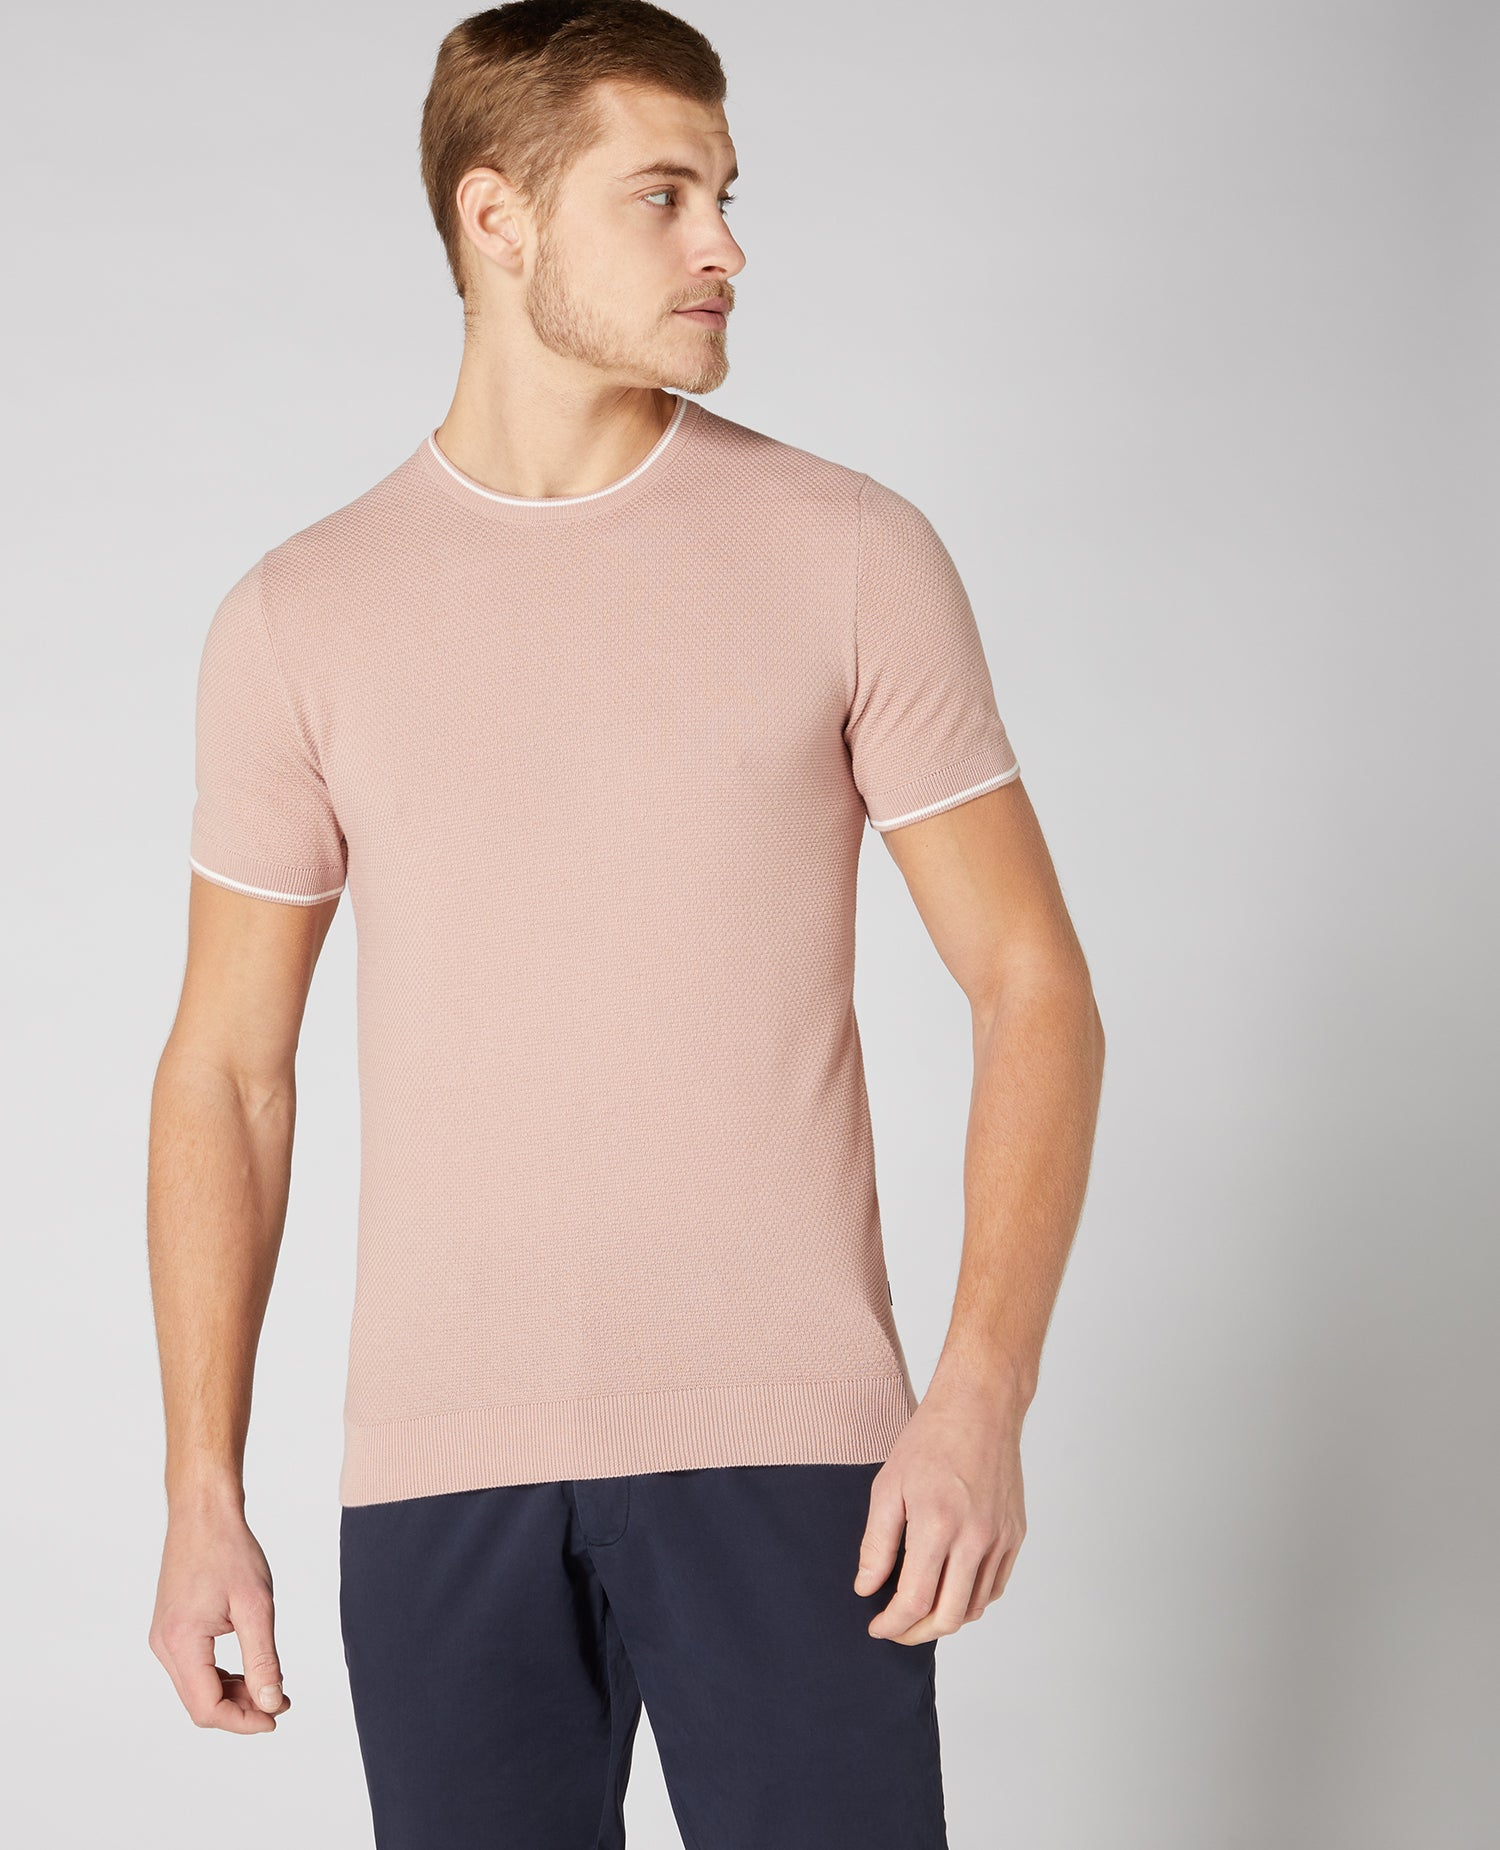 Slim Fit Knitted Cotton T-Shirt Pink | Remus Uomo